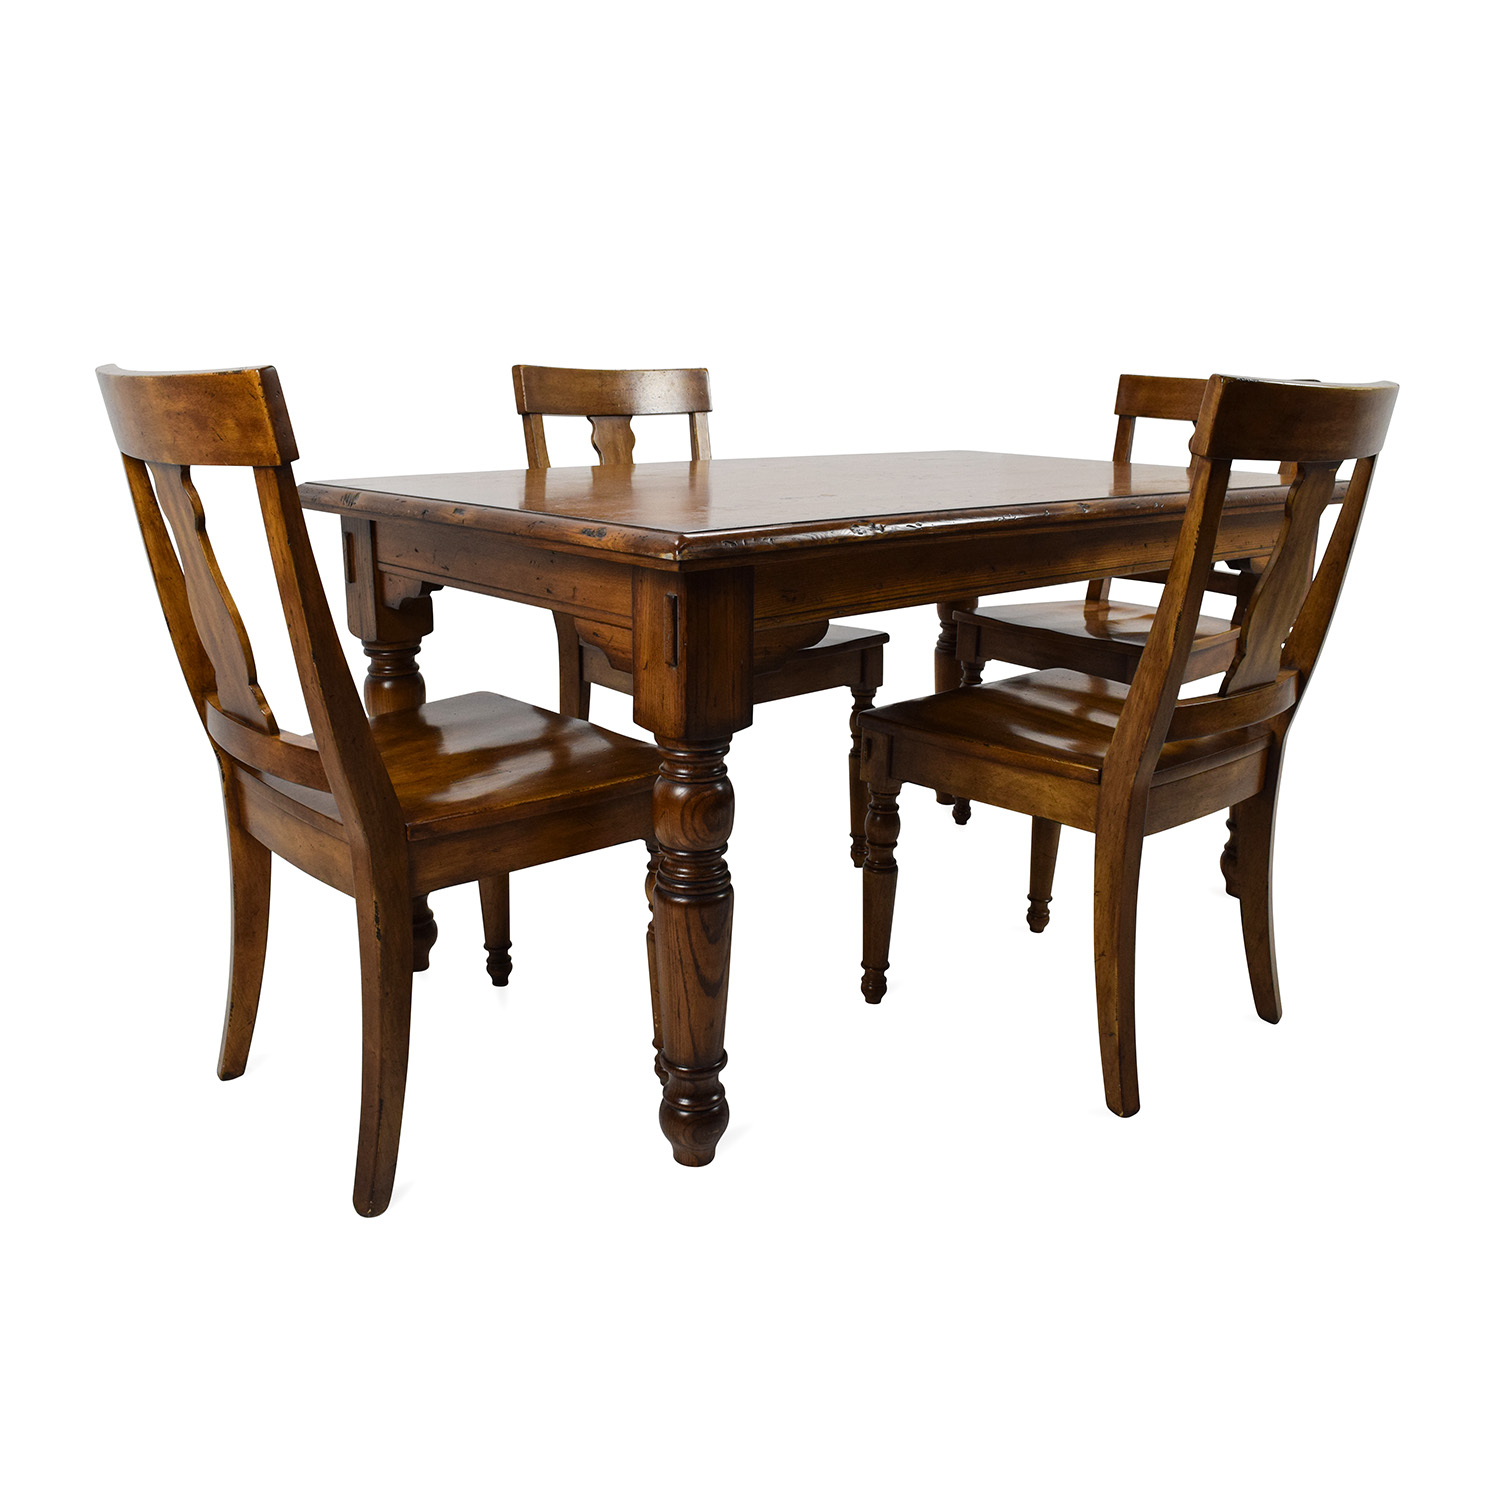 Pottery Barn Pottery Barn Solid Wood Dining Set price